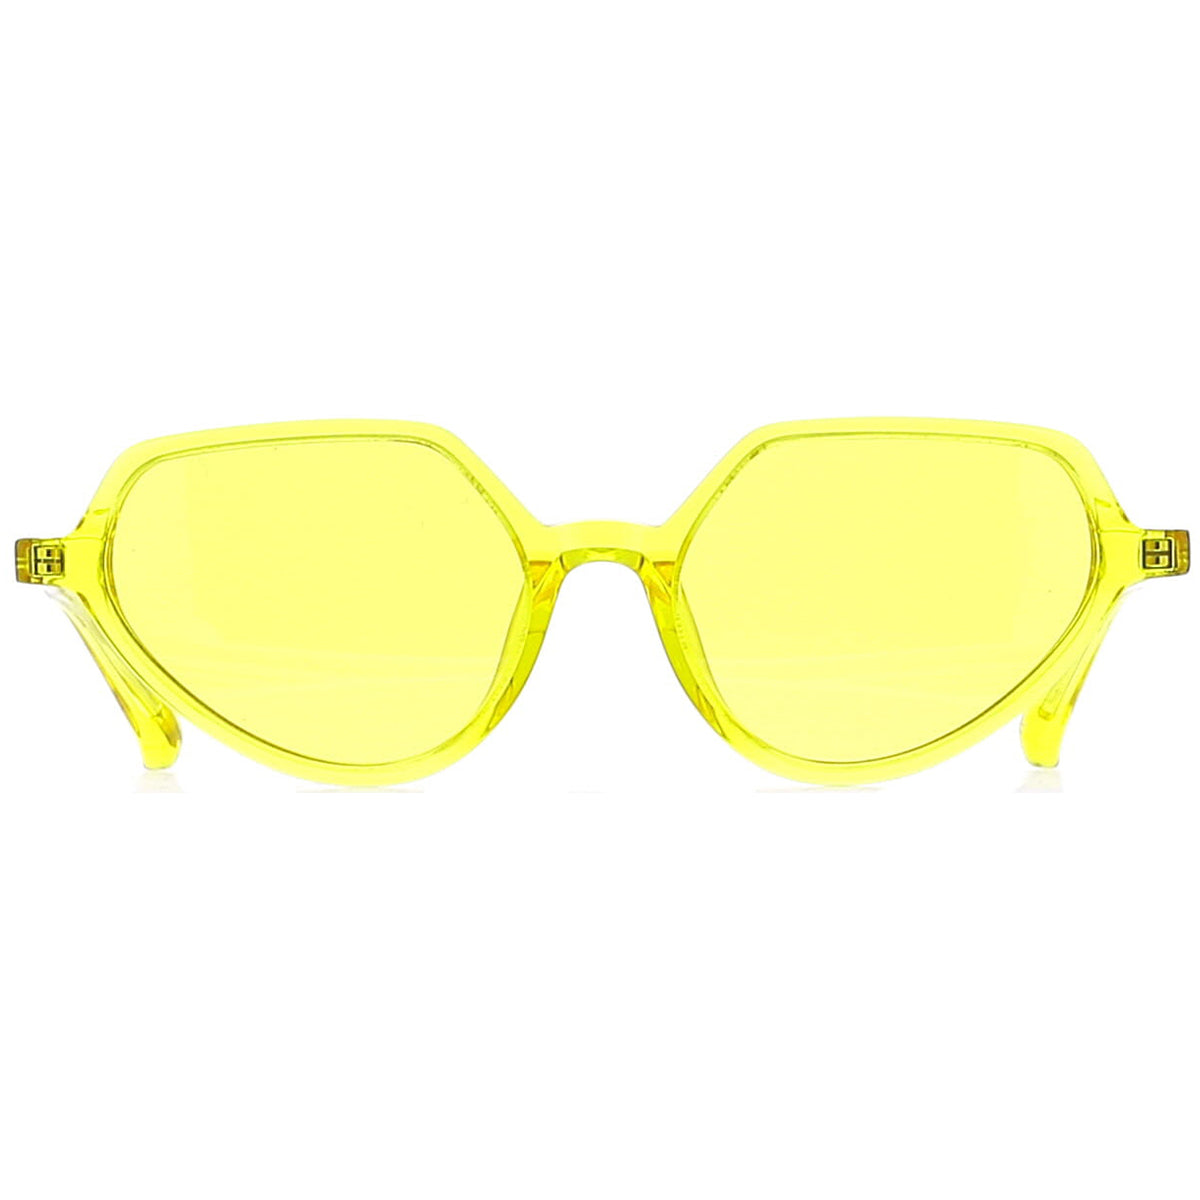 Dries Van Noten DVN178 C7 Sun Yellow/ Yellow Gold/ Yellow